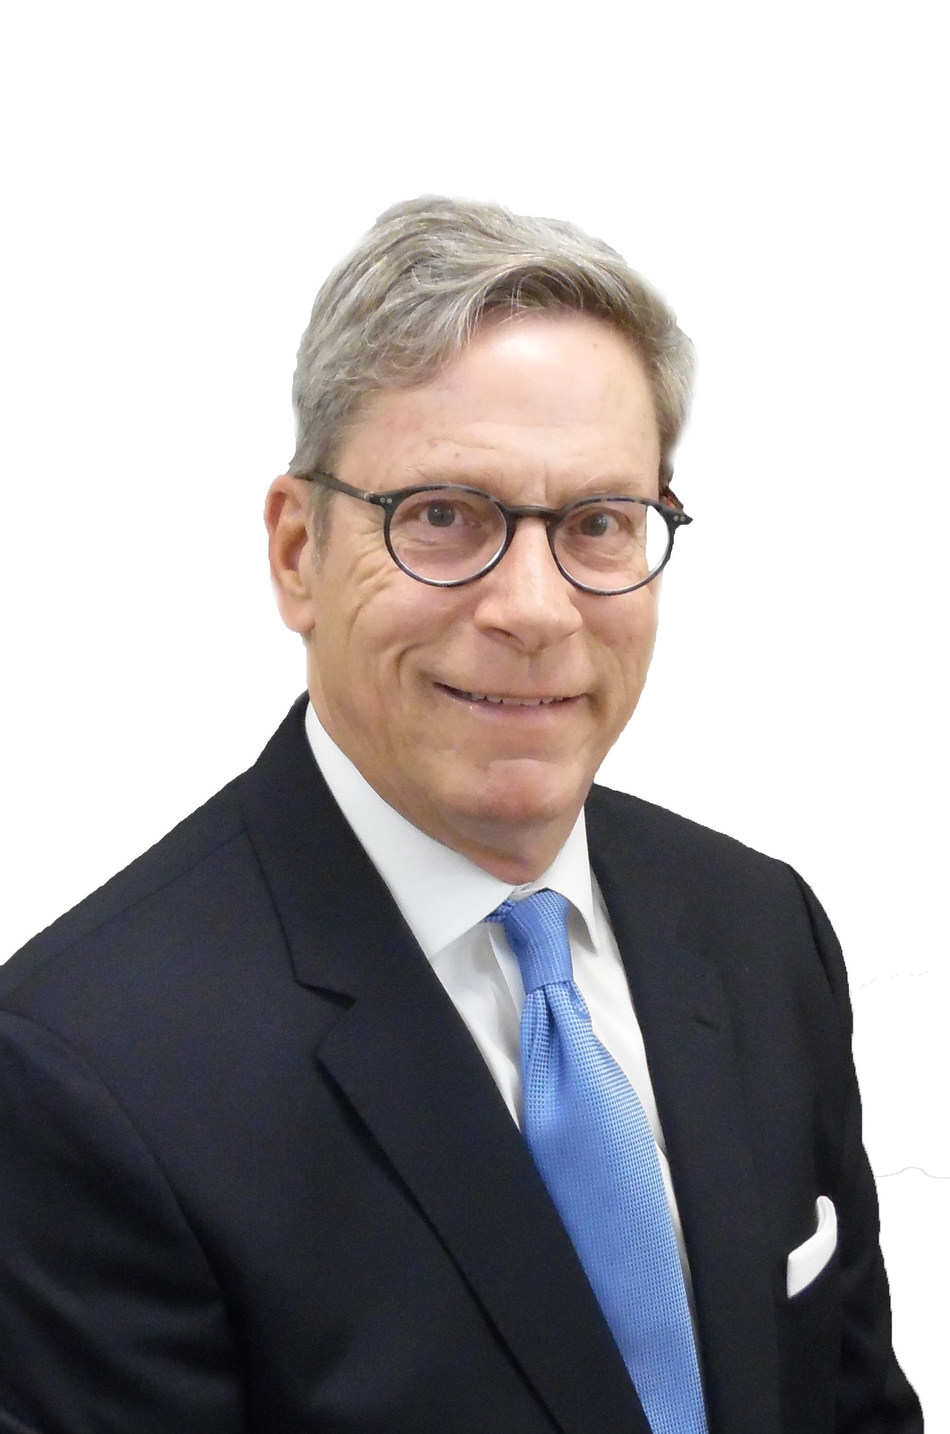 Lockton Dunning Benefits hires industry leader Paul Botkin as Vice President for disability consulting and leave administration.